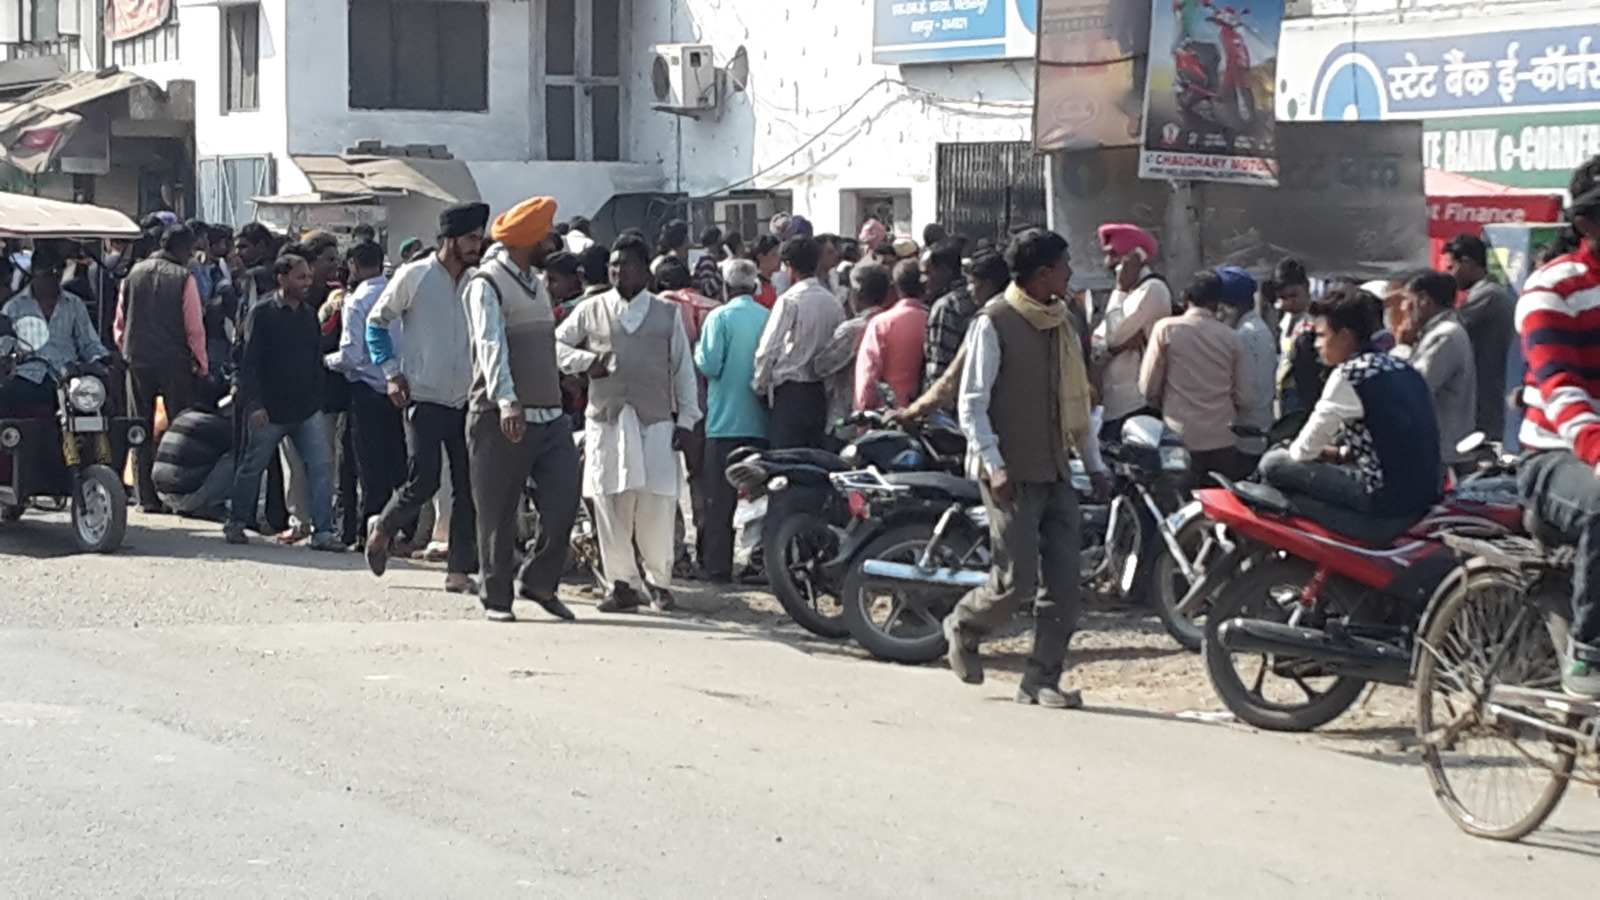 Queues at the banks in India following the abolition of 500 and 1000 rupee notes